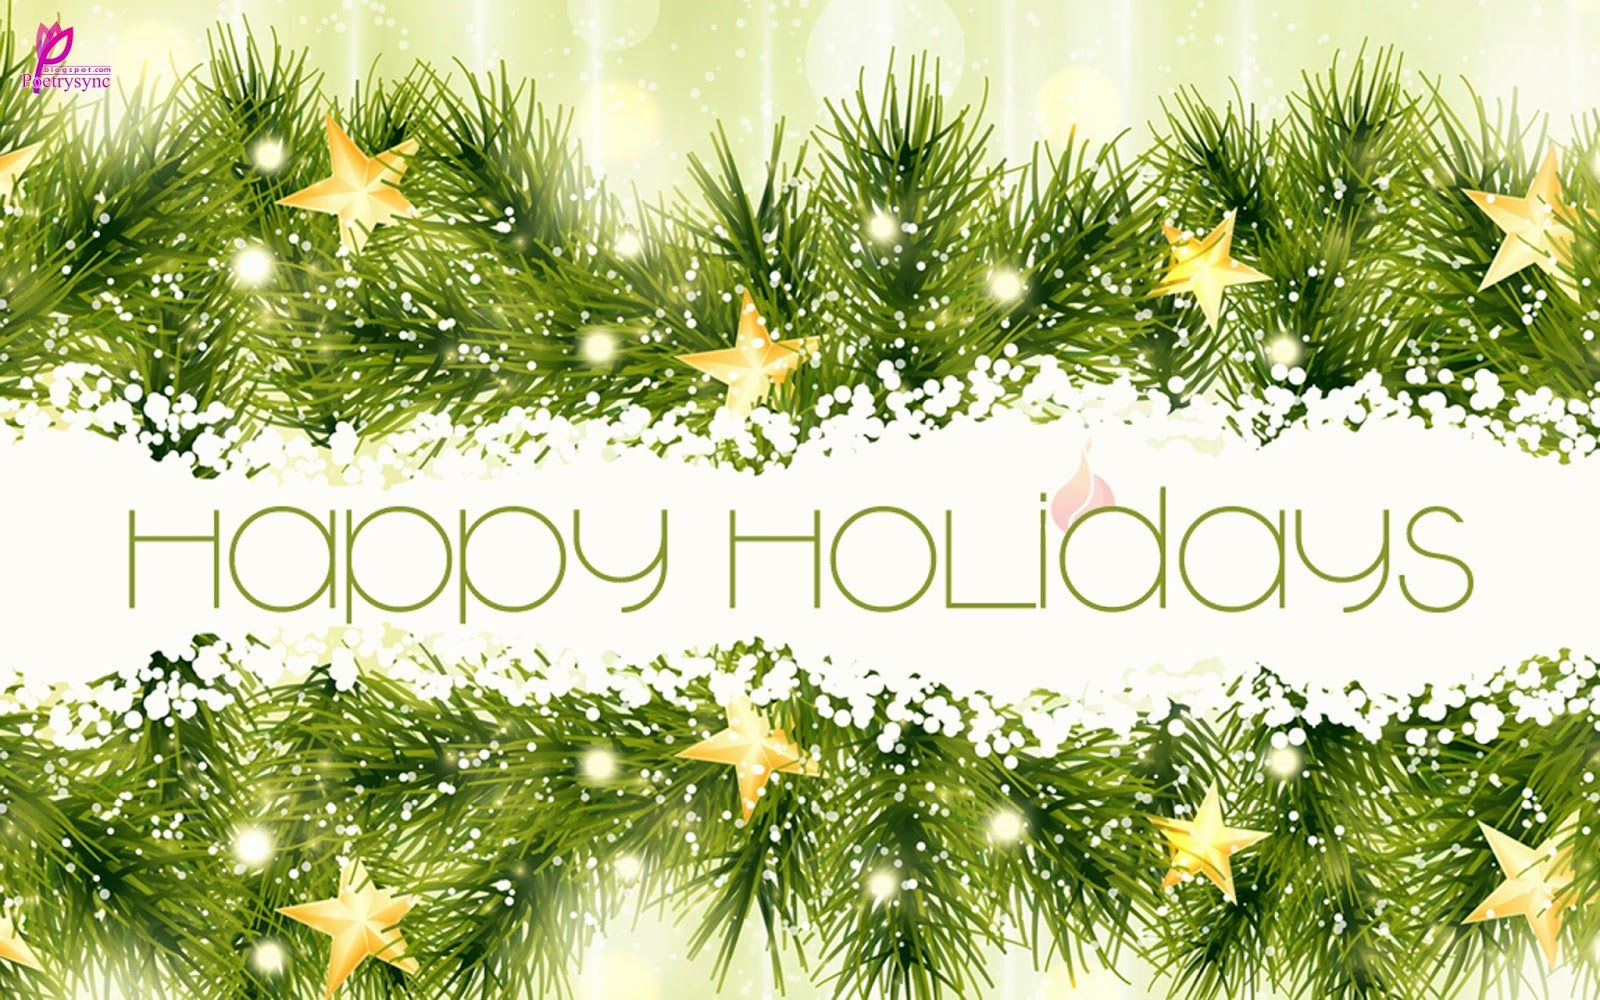 Happy Holidays Pictures, Photos, And Images For Facebook